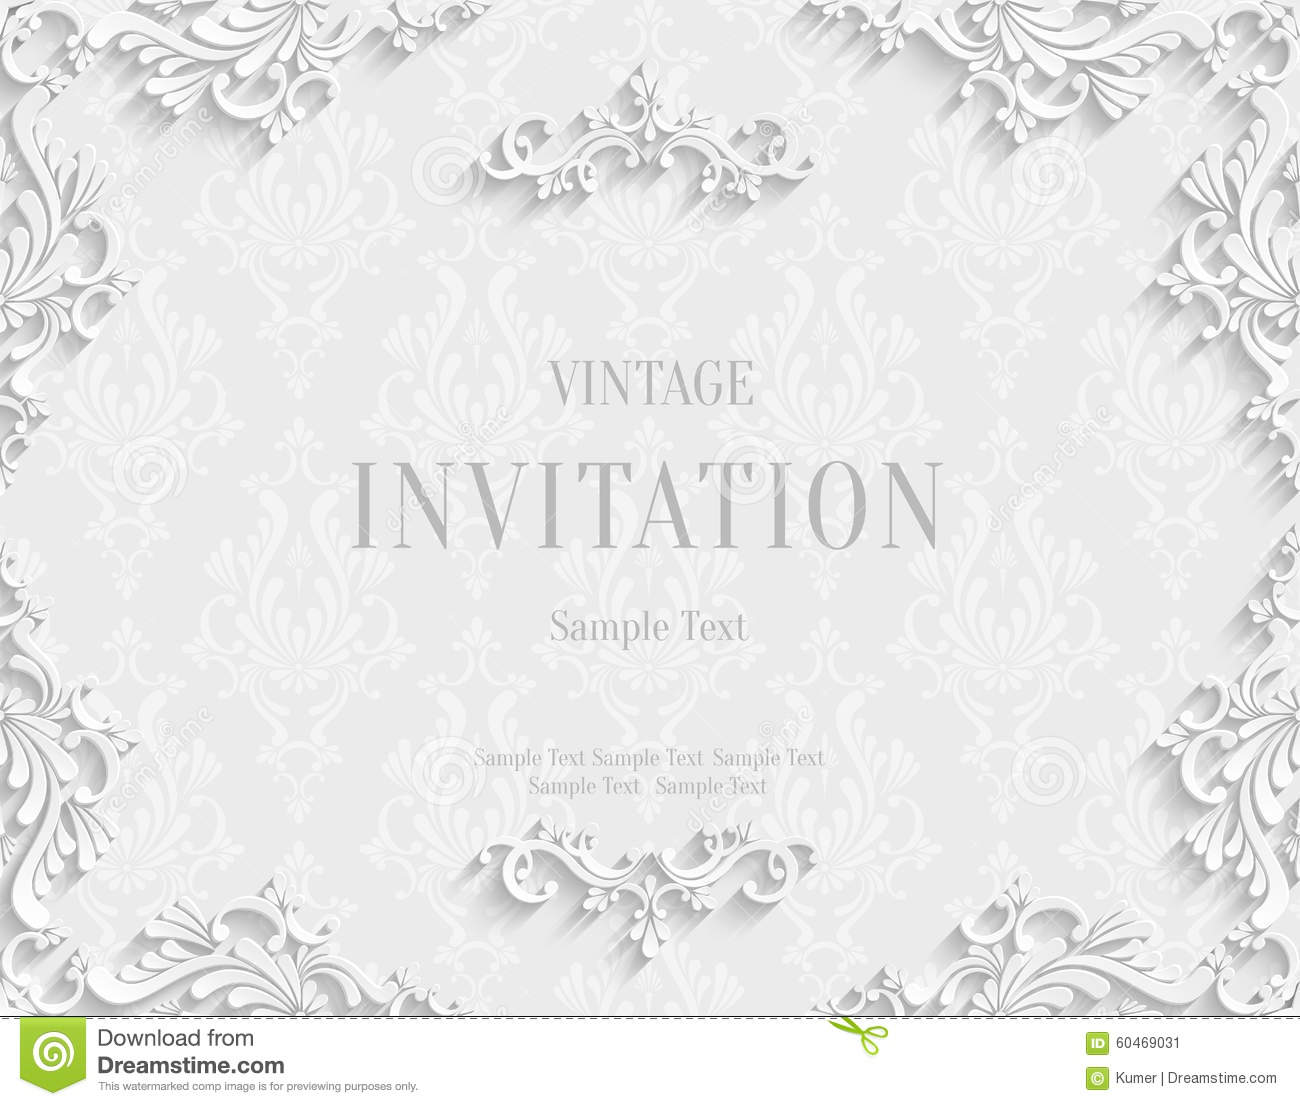 Vector White 3d Vintage Invitation Card With Floral Damask